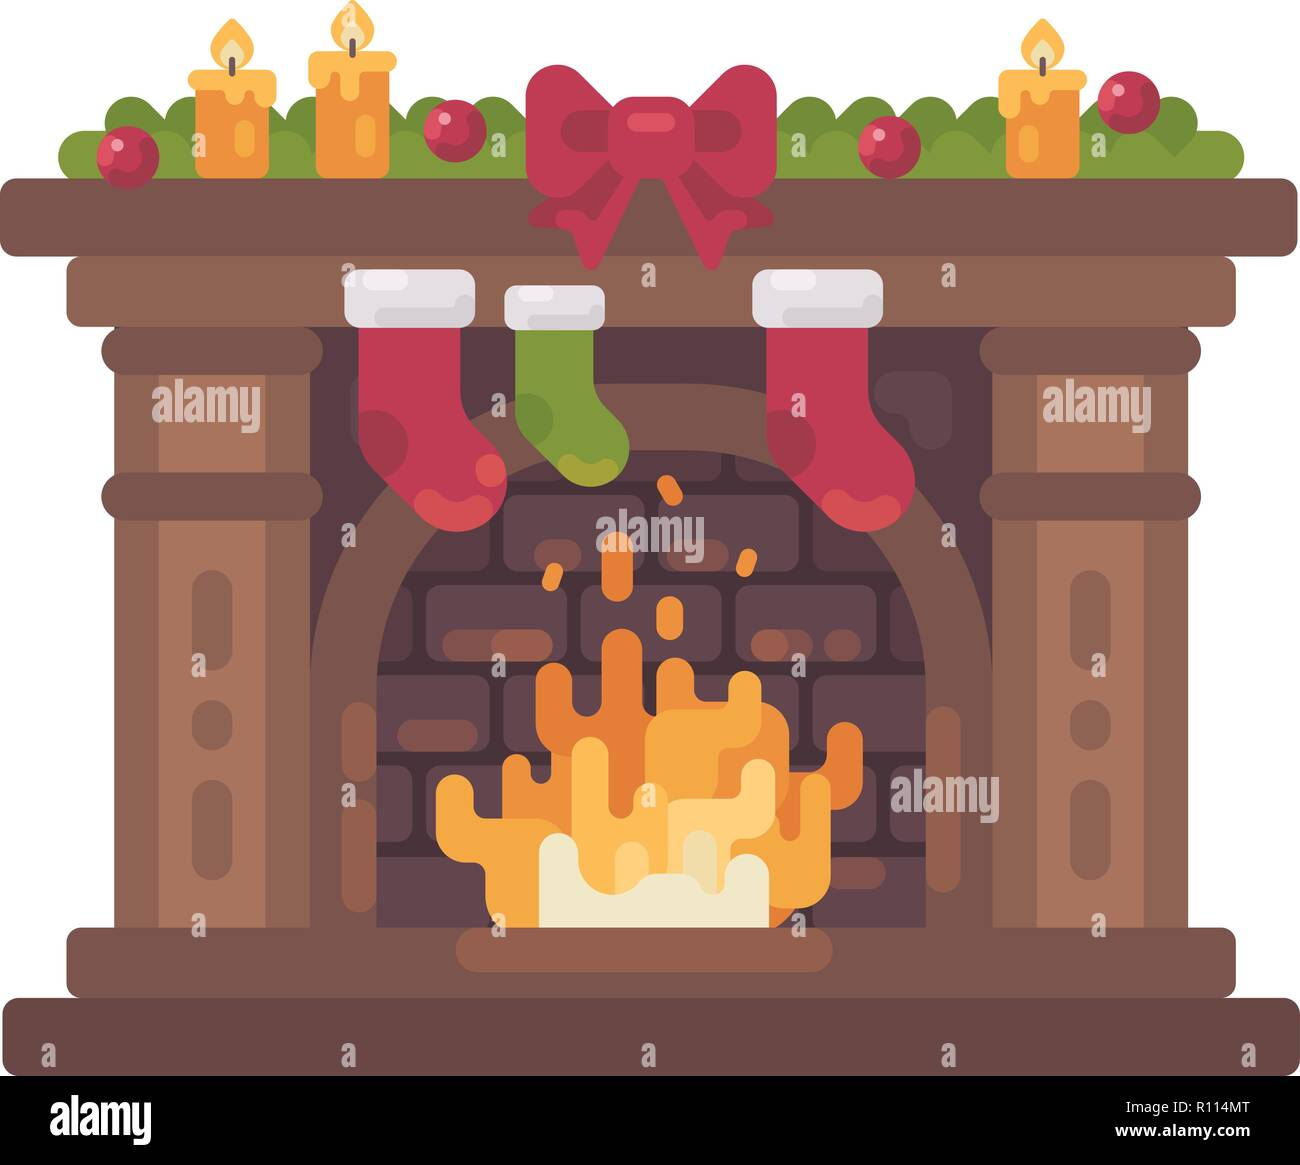 Decorated Christmas fireplace with stockings for presents flat illustration - Stock Vector